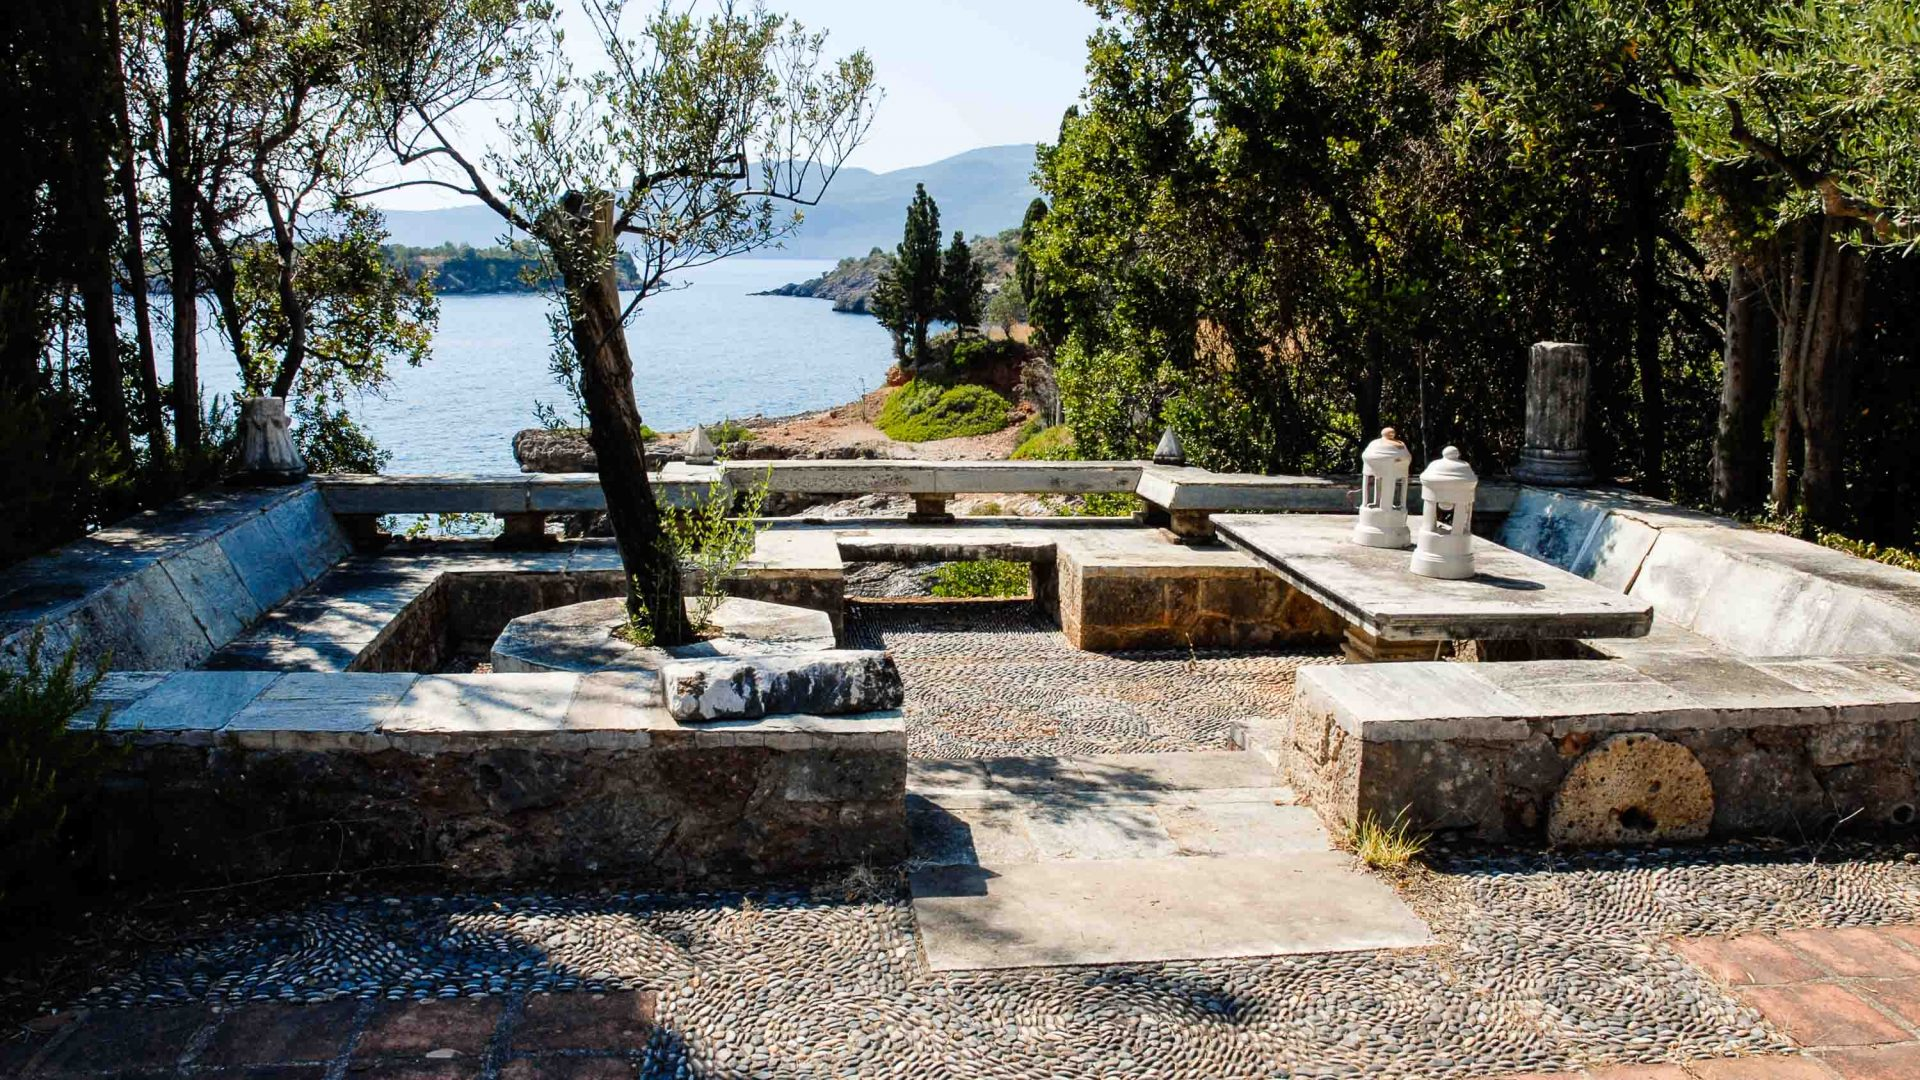 Benaki Museum and Aria Hotels Announce Renting Options For